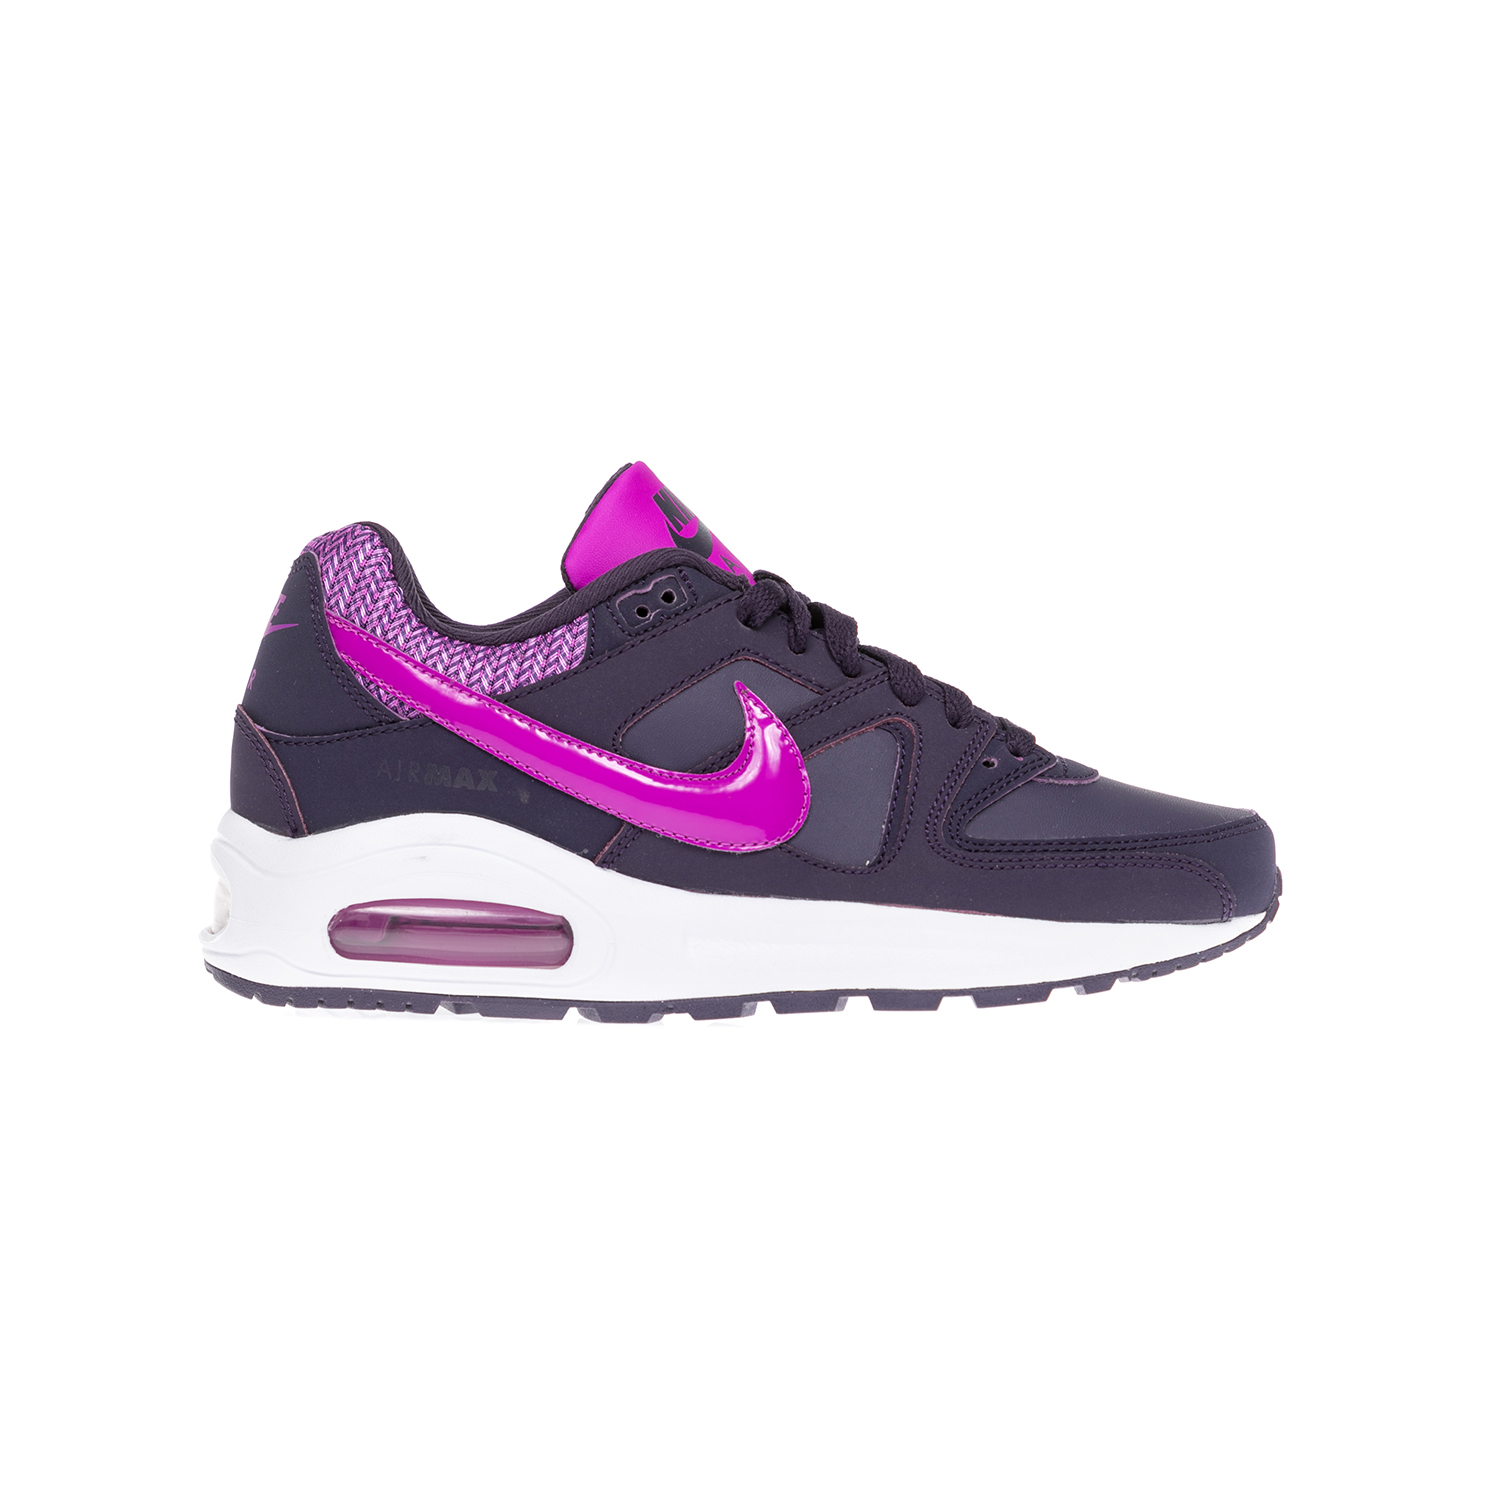 NIKE – Παιδικά παπούτσια NIKE AIR MAX COMMAND FLEX LTR GS μοβ